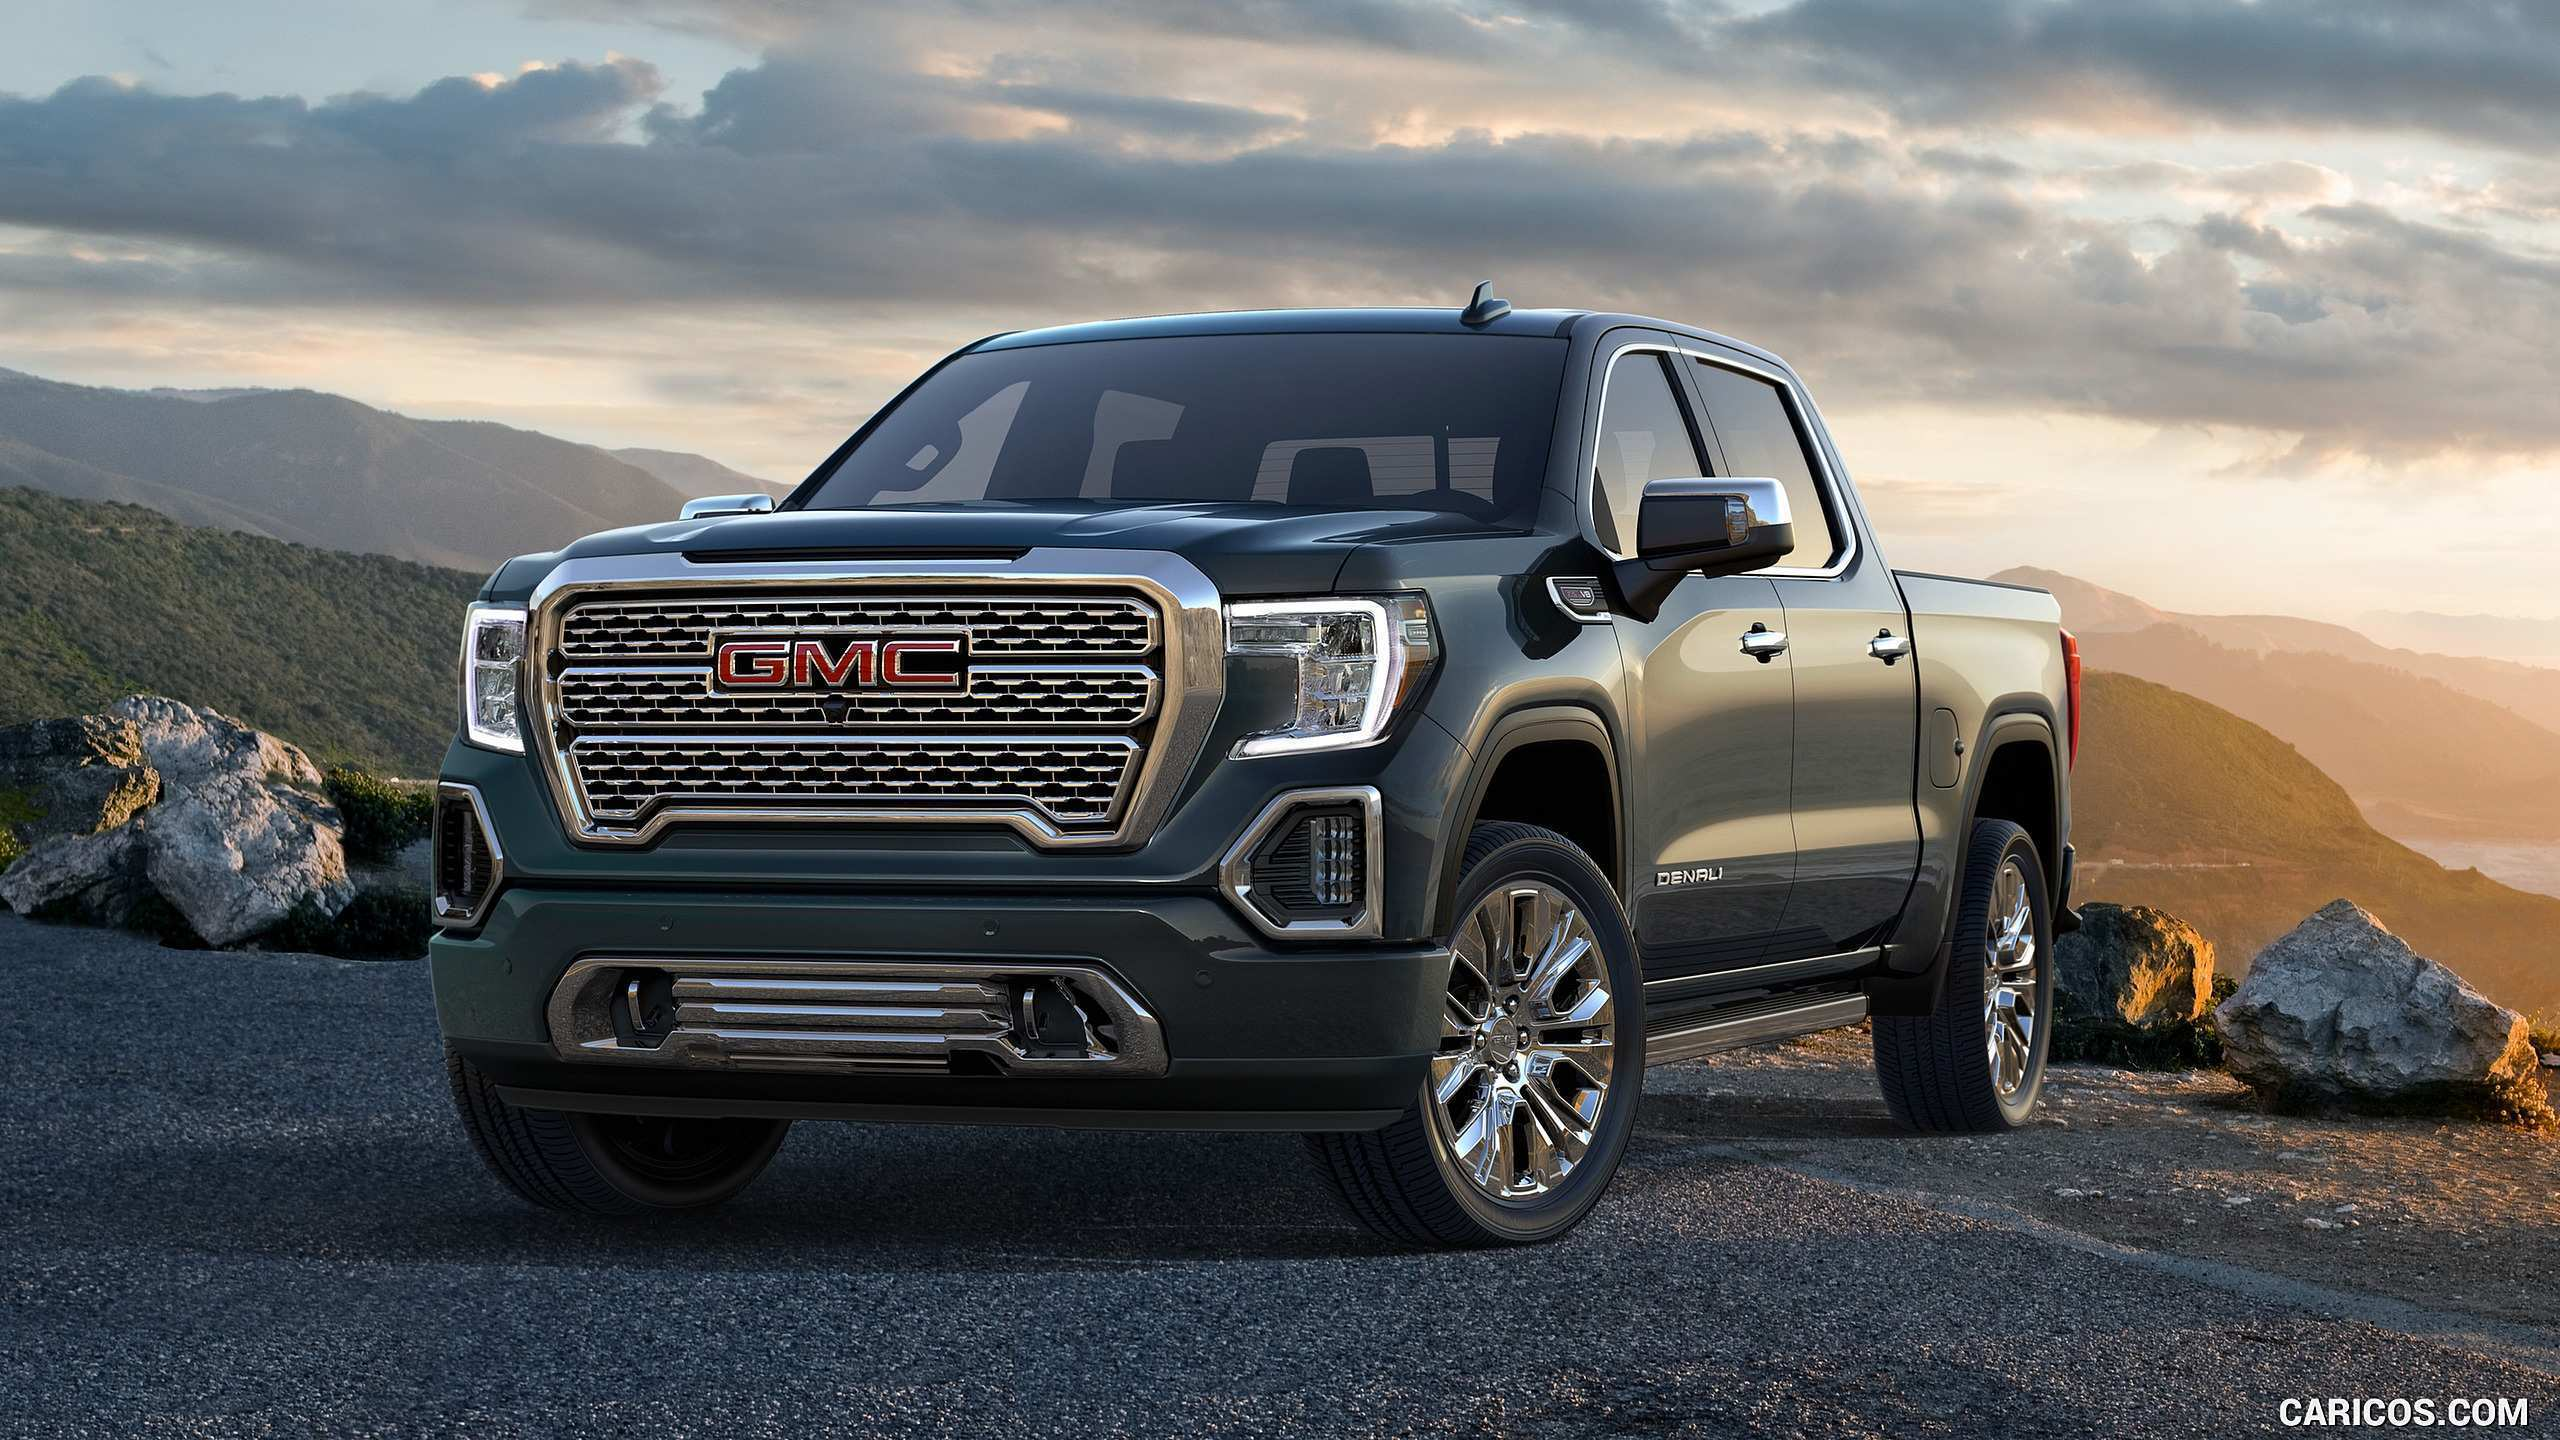 37 All New The Images Of 2019 Gmc Sierra Release Specs And Review Price and Review for The Images Of 2019 Gmc Sierra Release Specs And Review